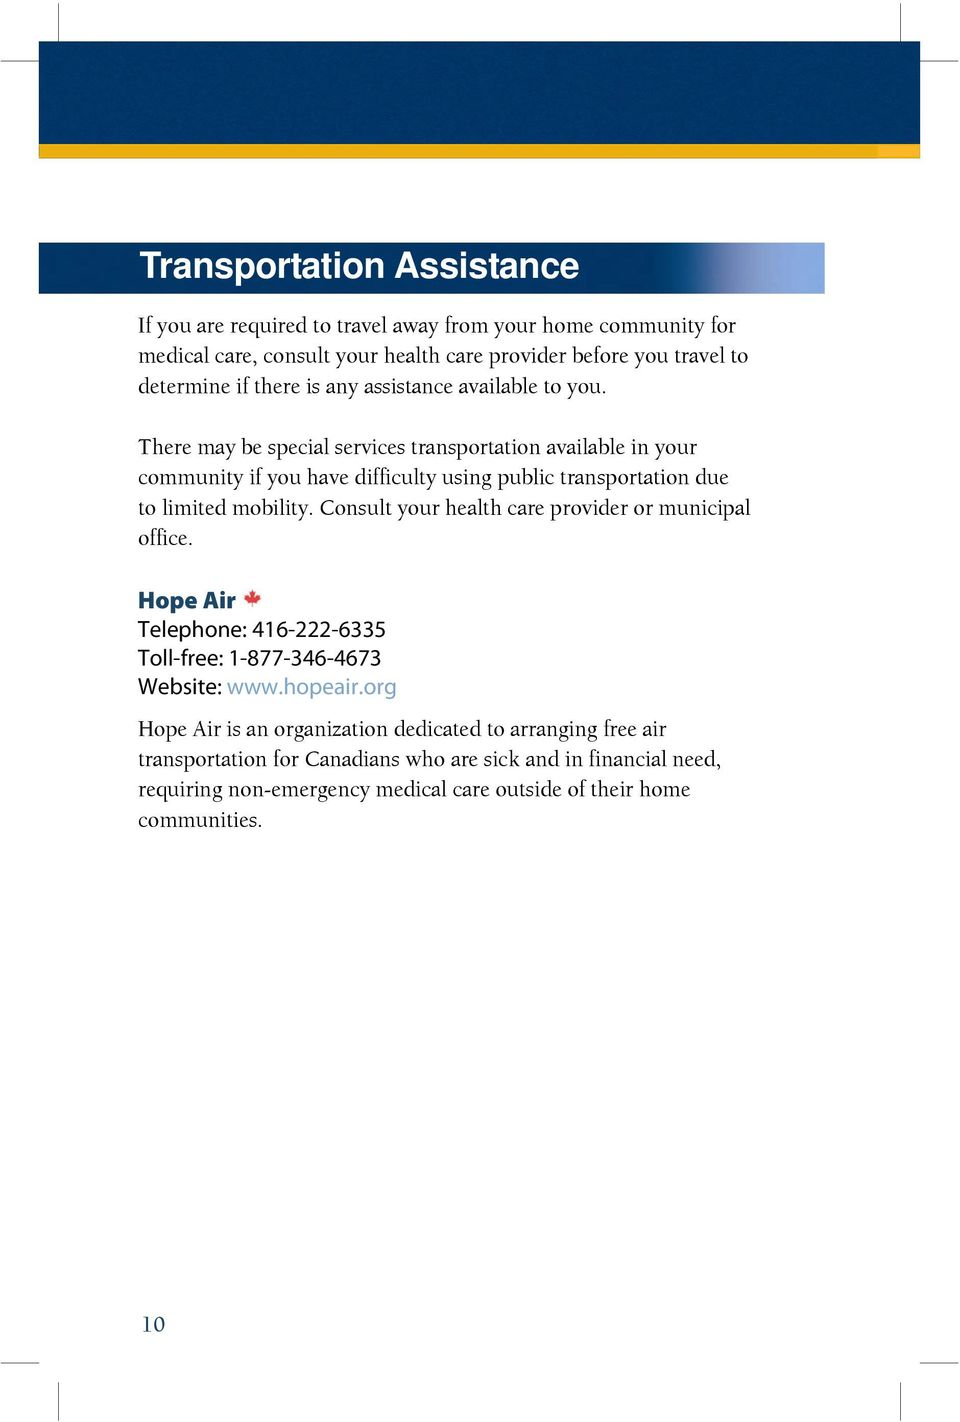 There may be special services transportation available in your community if you have difficulty using public transportation due to limited mobility.